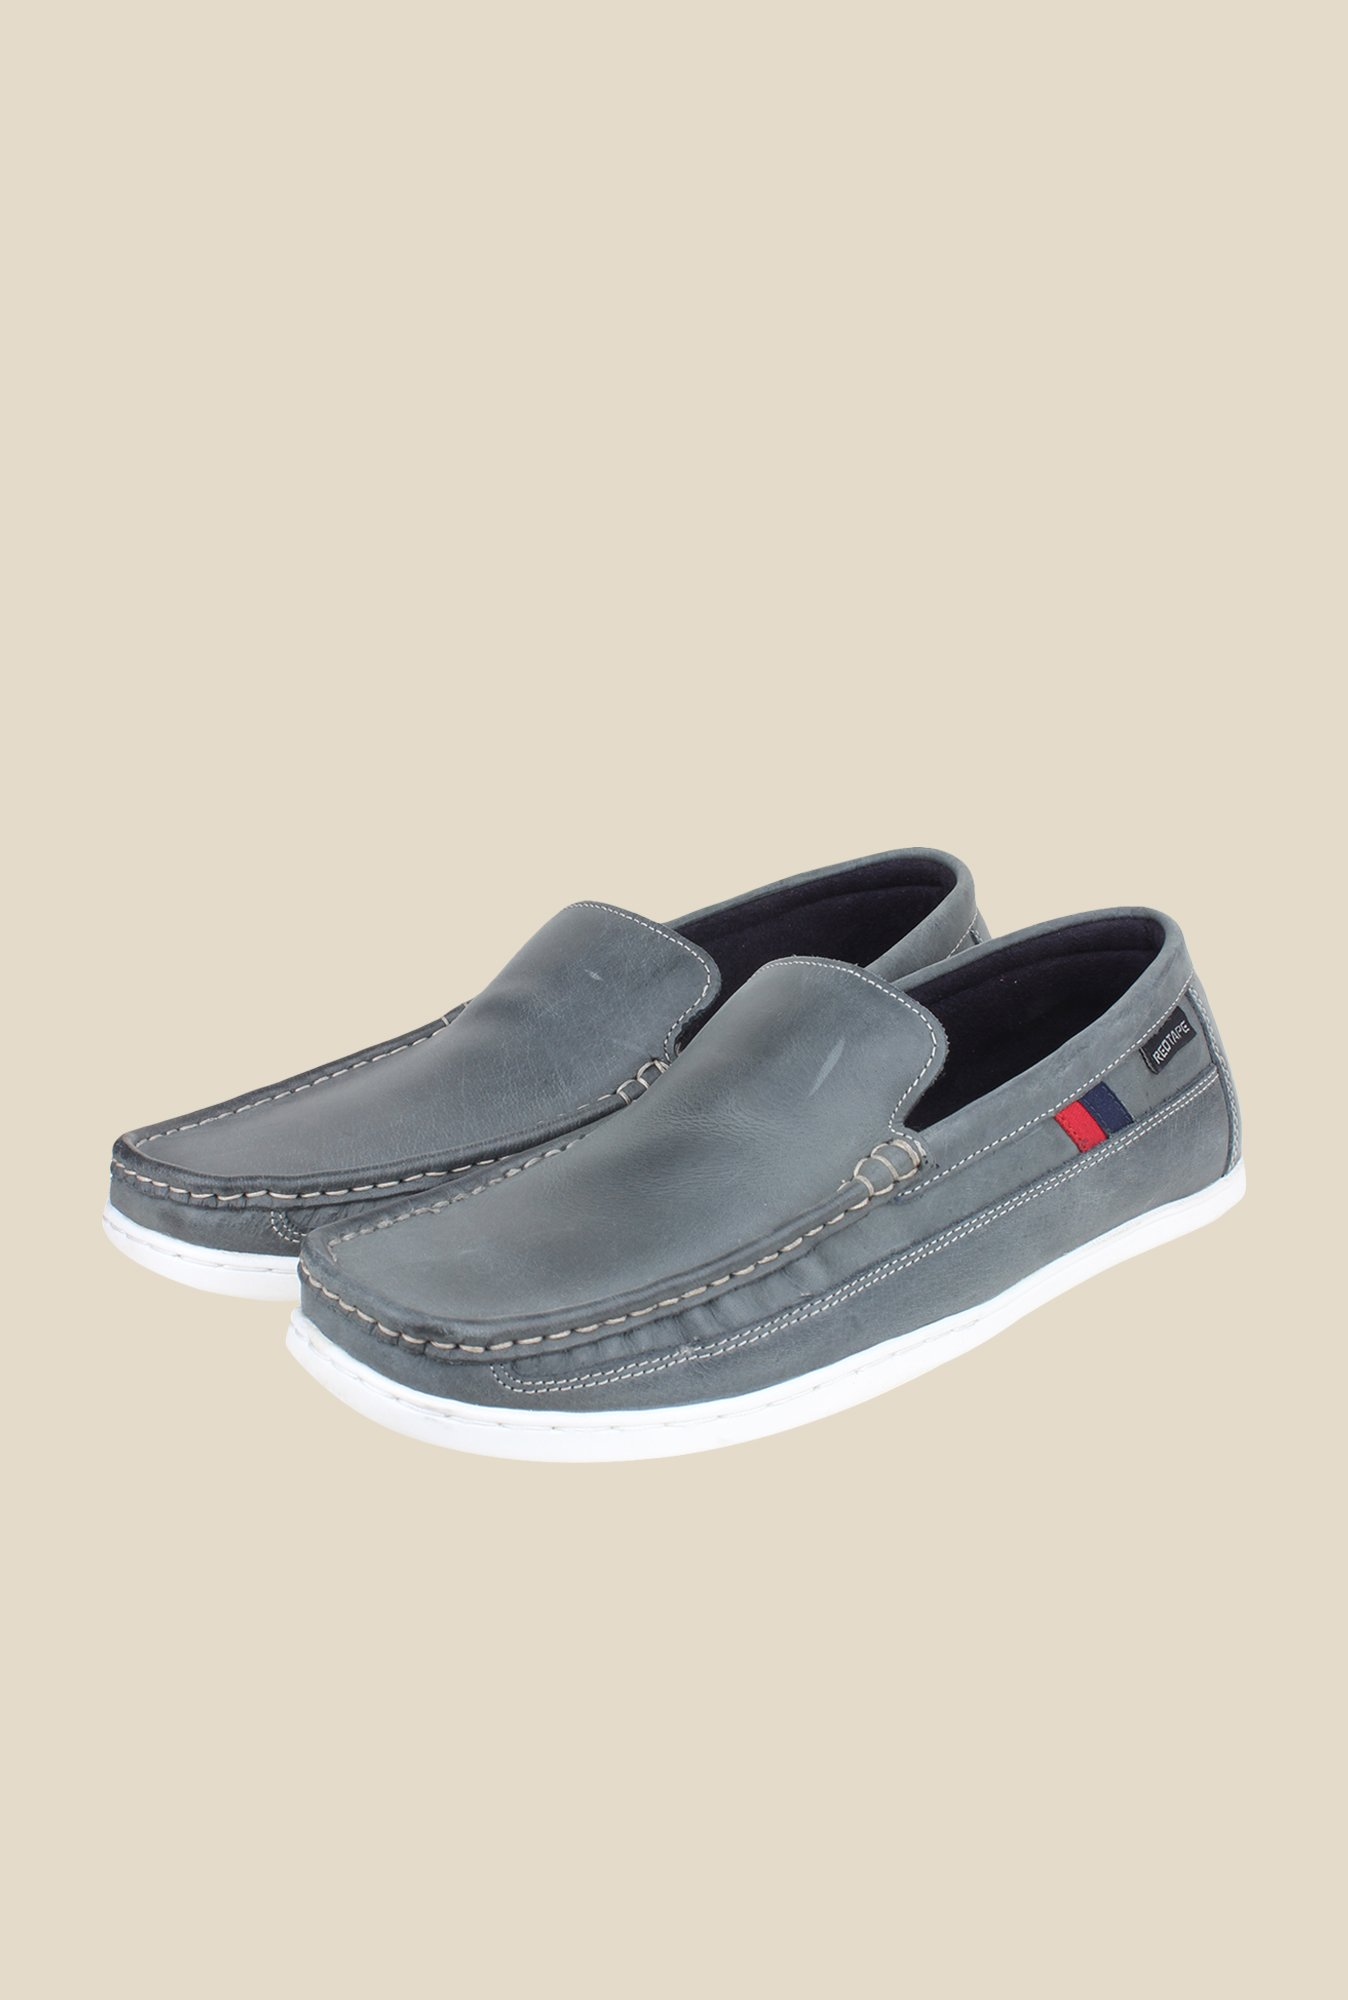 Red Tape Light Navy Leather Loafers